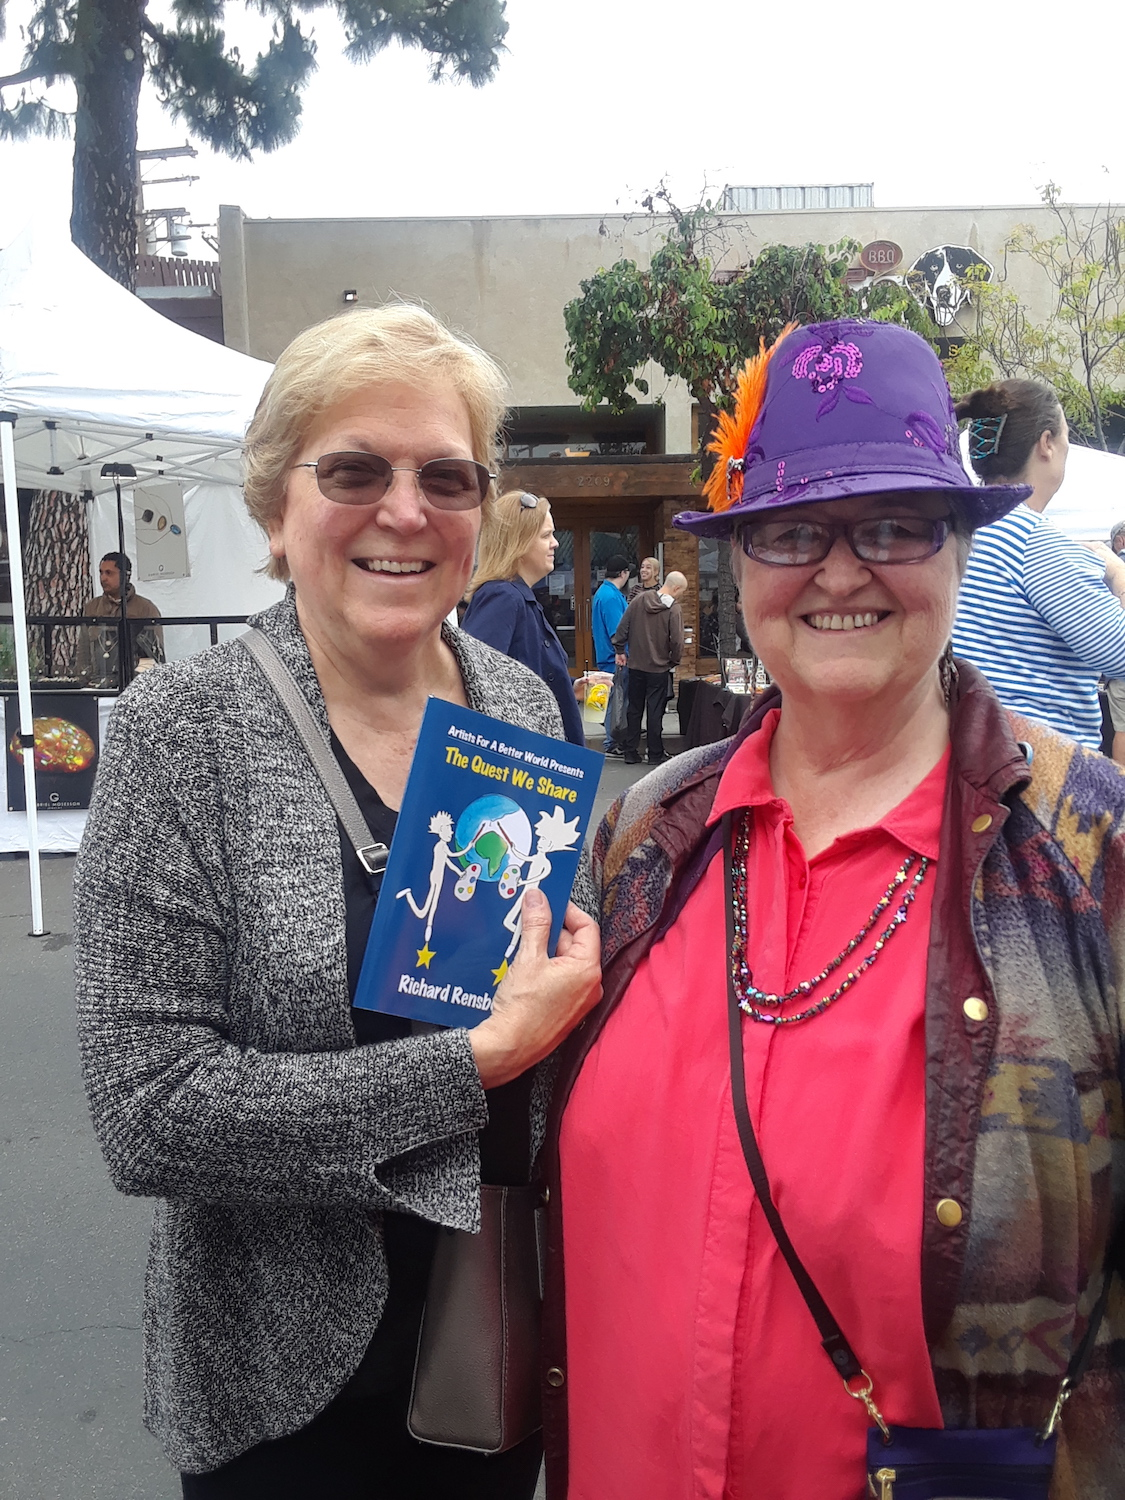 Books Make Booms Custom book- The Quest We Share at an Artists For A Better World event in Los Angeles, California.